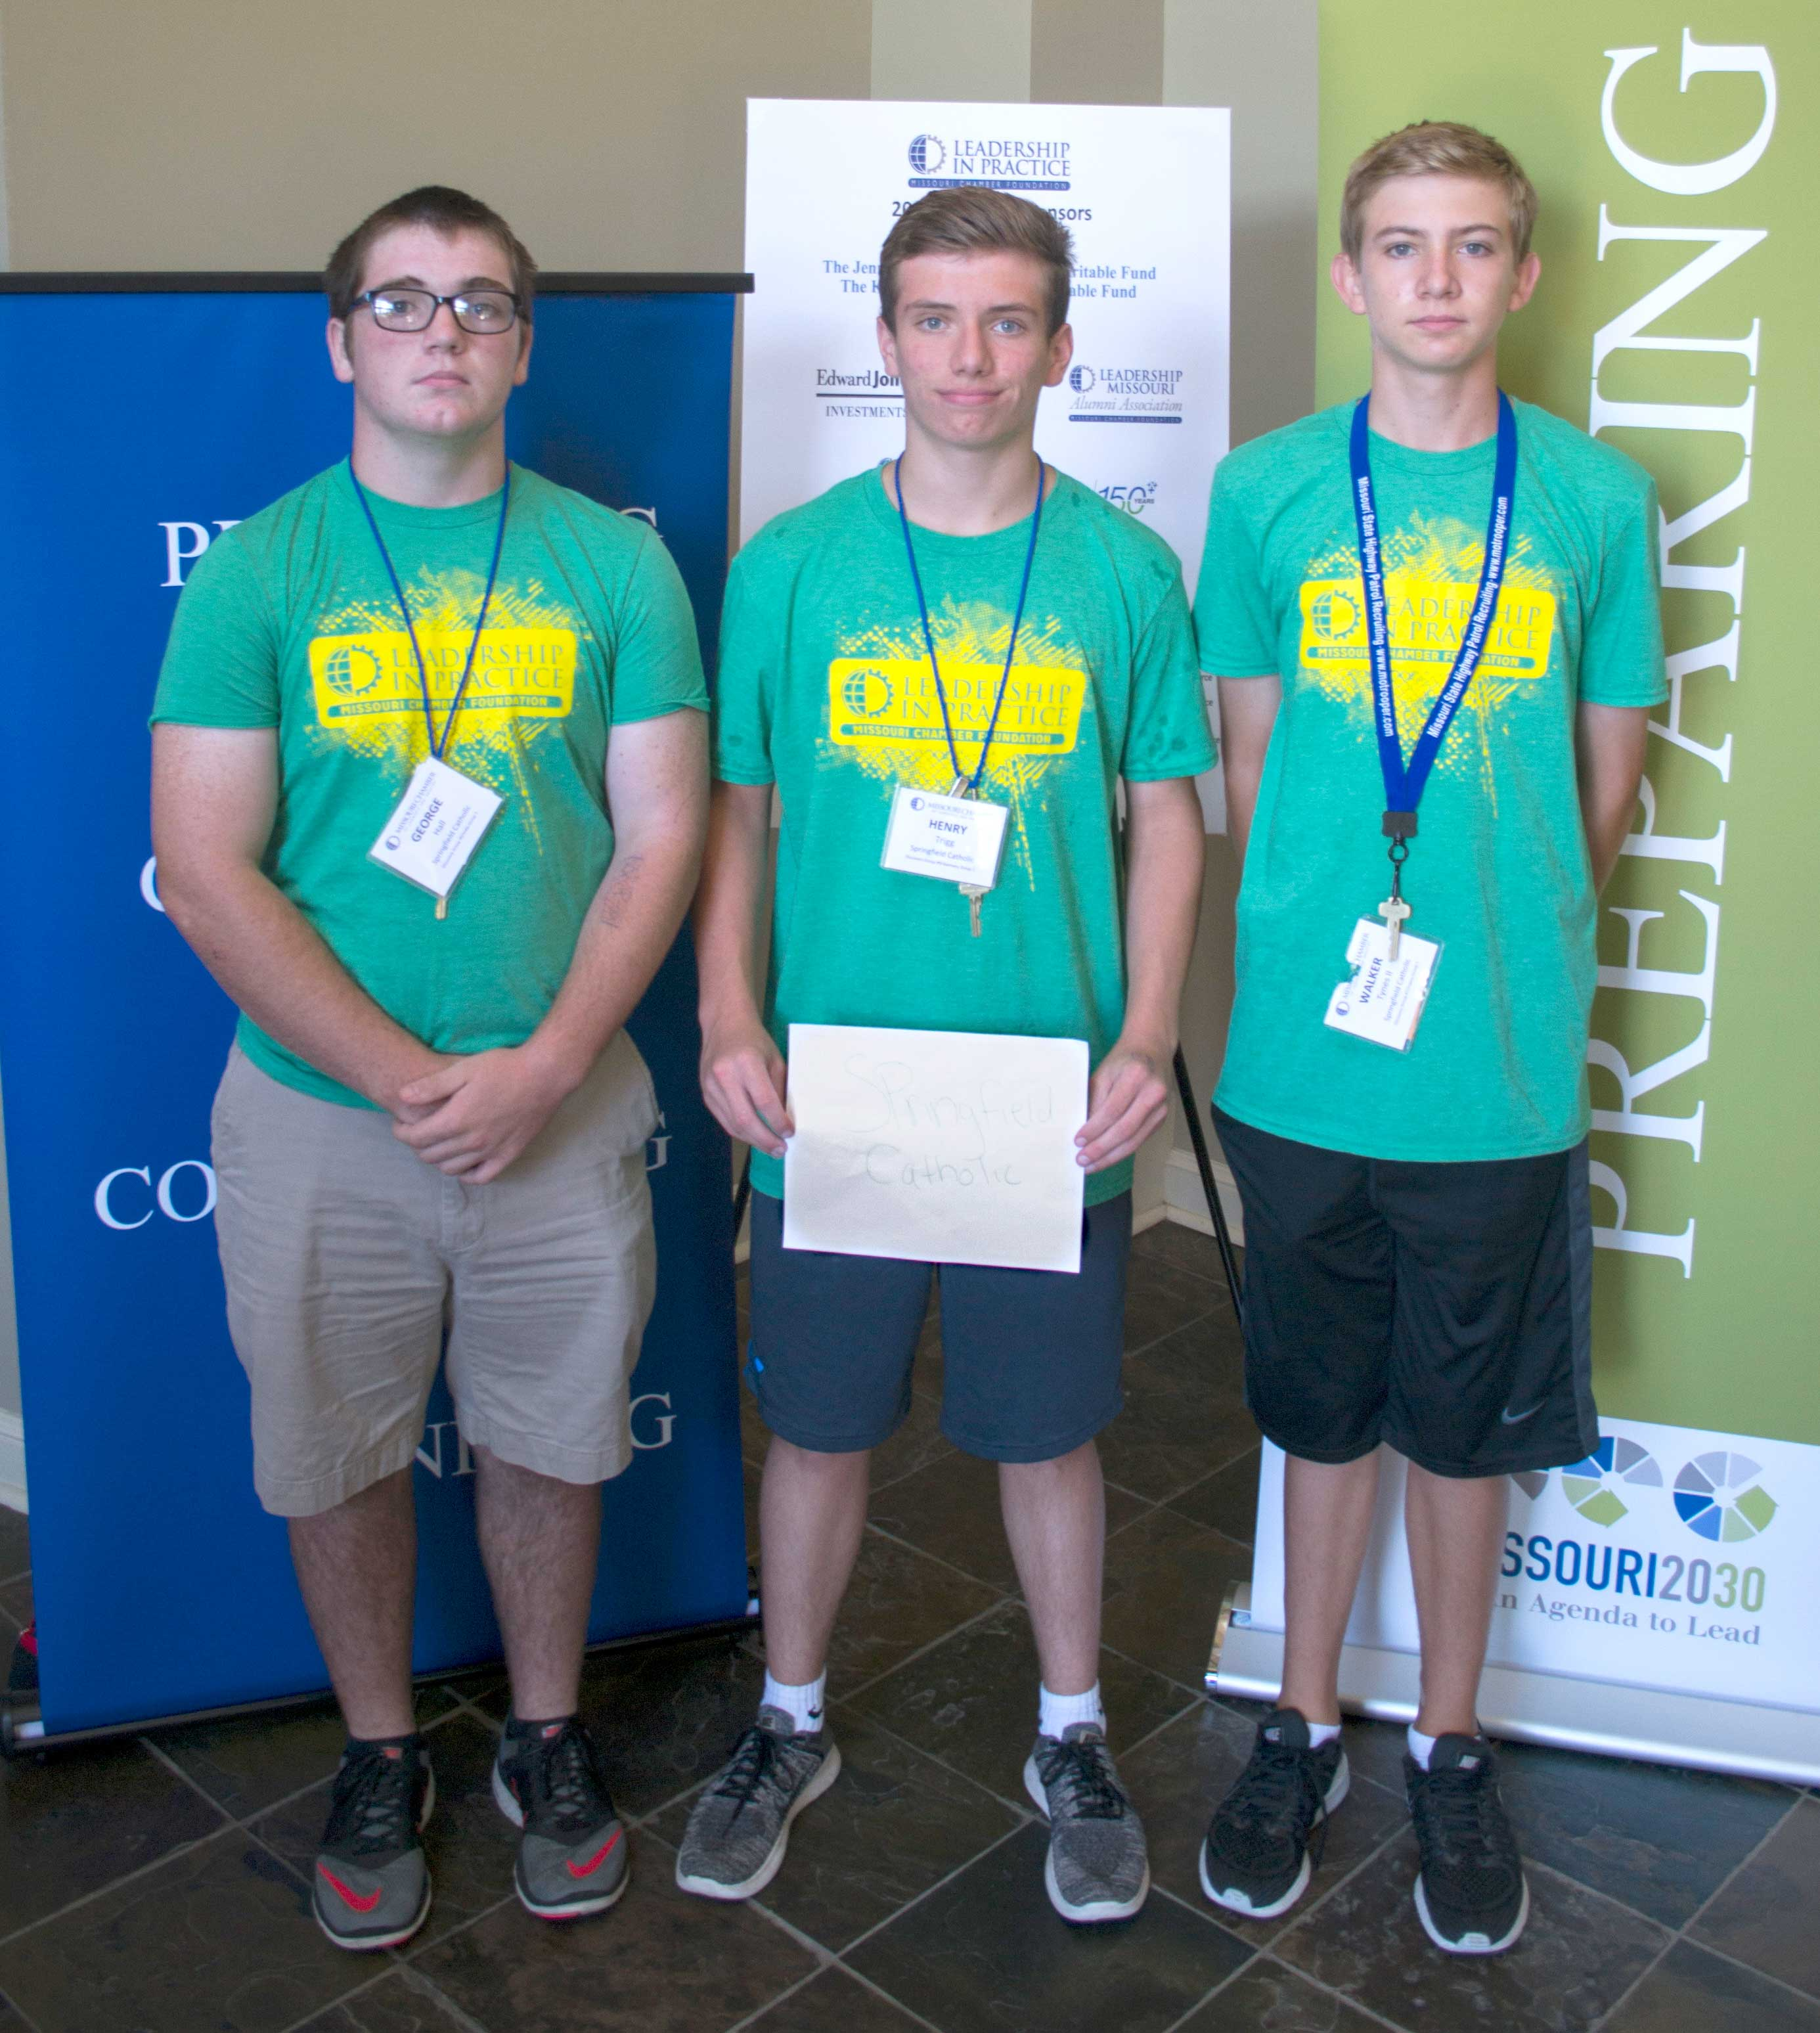 LEADERSHIP IN PRACTICE—George Hall, Henry Trigg, and Walker Tynes II, incoming sophomores at Springfield Catholic High School, attended the Missouri Chamber of Commerce and Industry's Leadership Practice program June 25-28 in Fulton, MO. (Submitted photo)